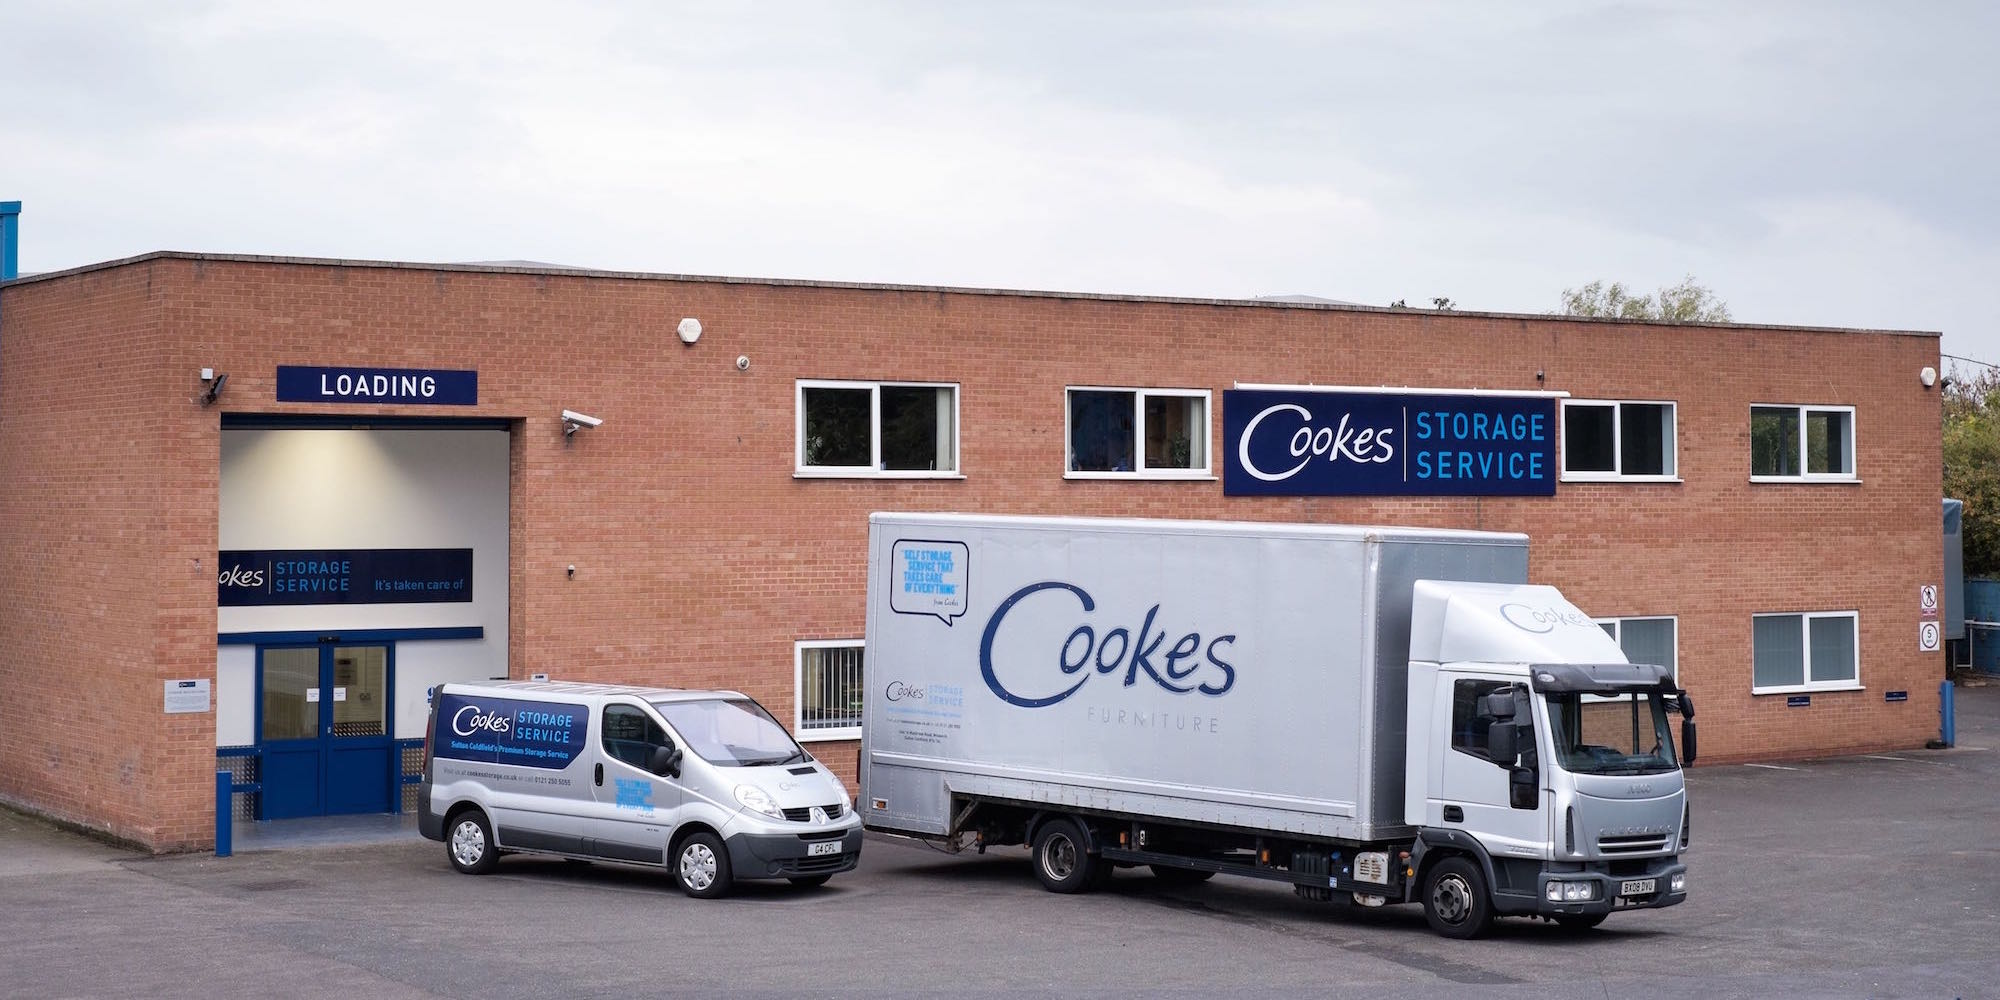 Self Storage Sutton Coldfield Cookes Storage Service